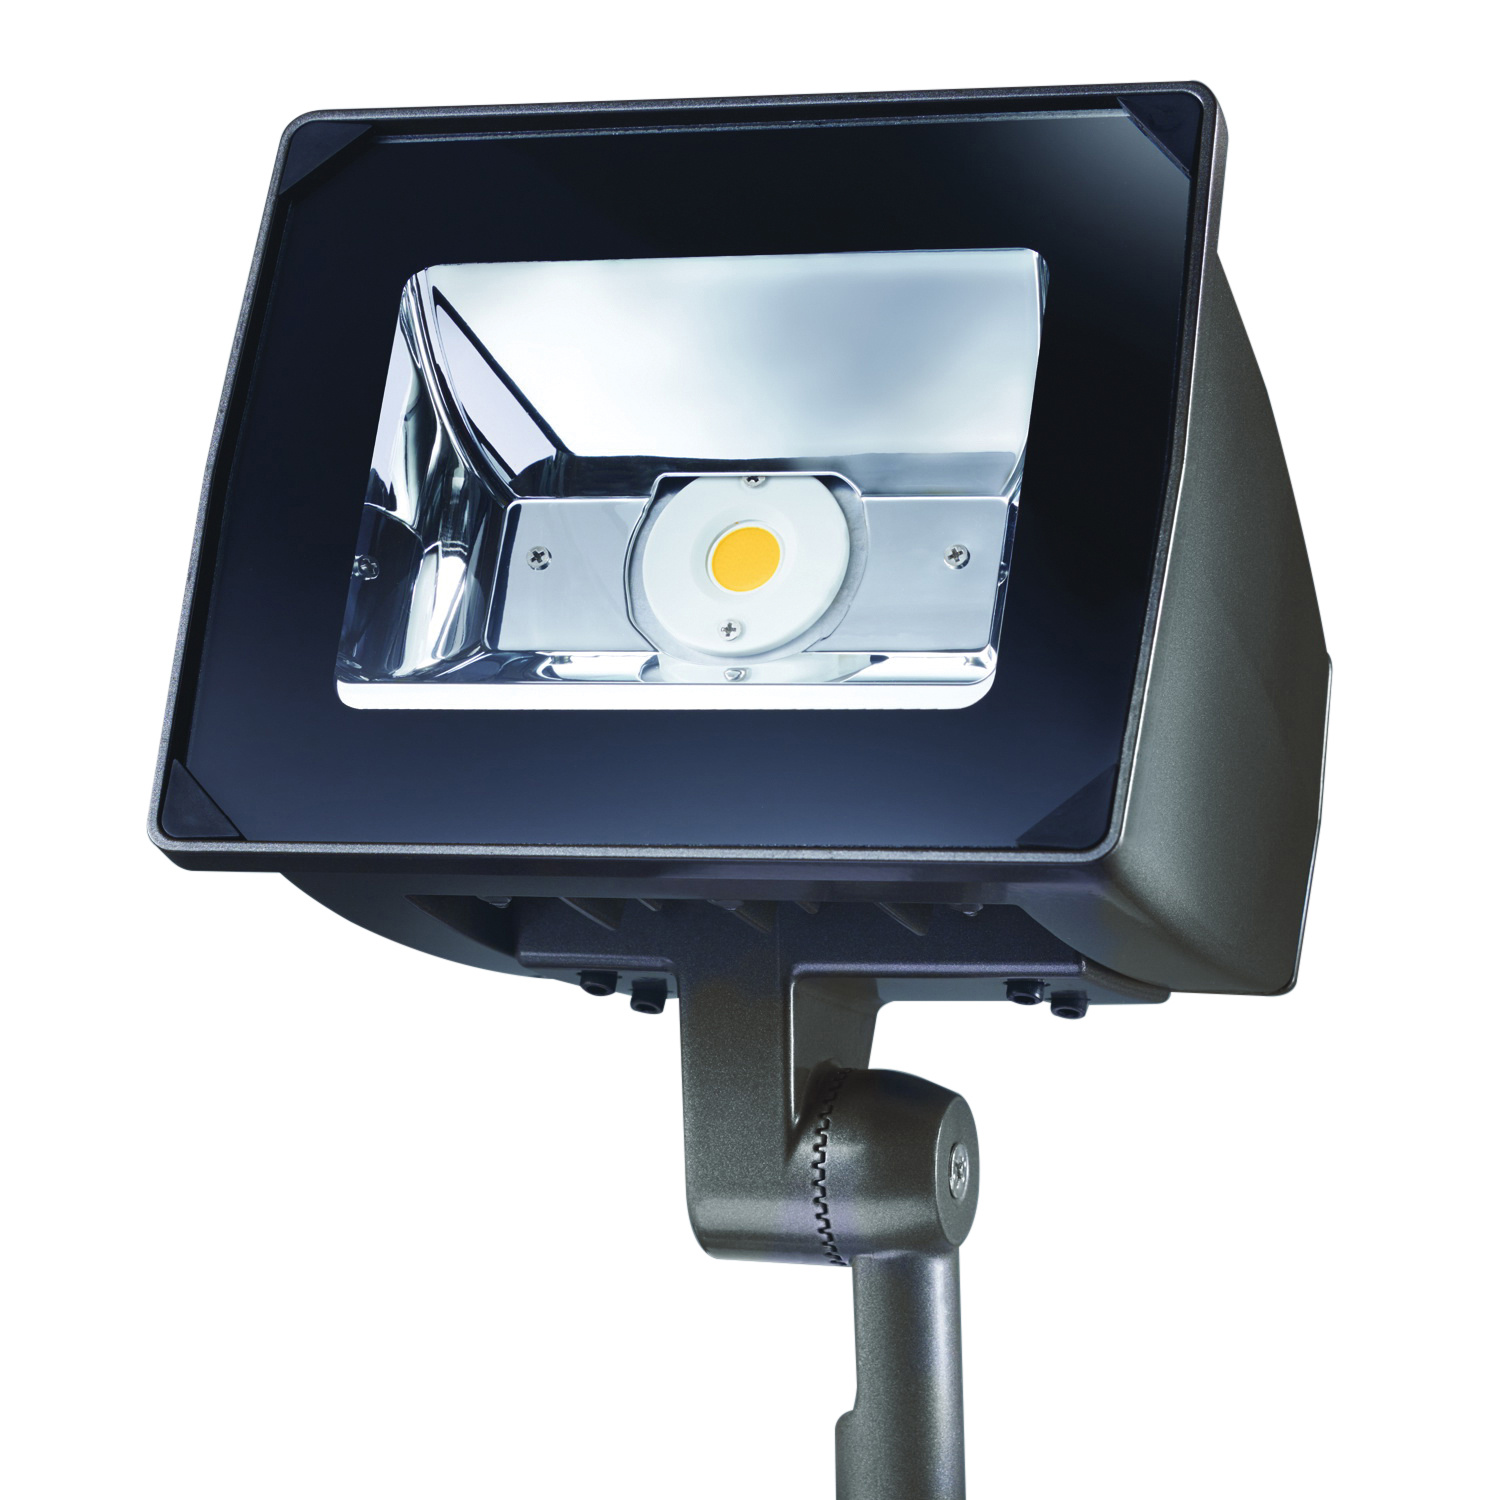 Cooper Lighting Nffld S C15 Knc Unv Led Flood Light